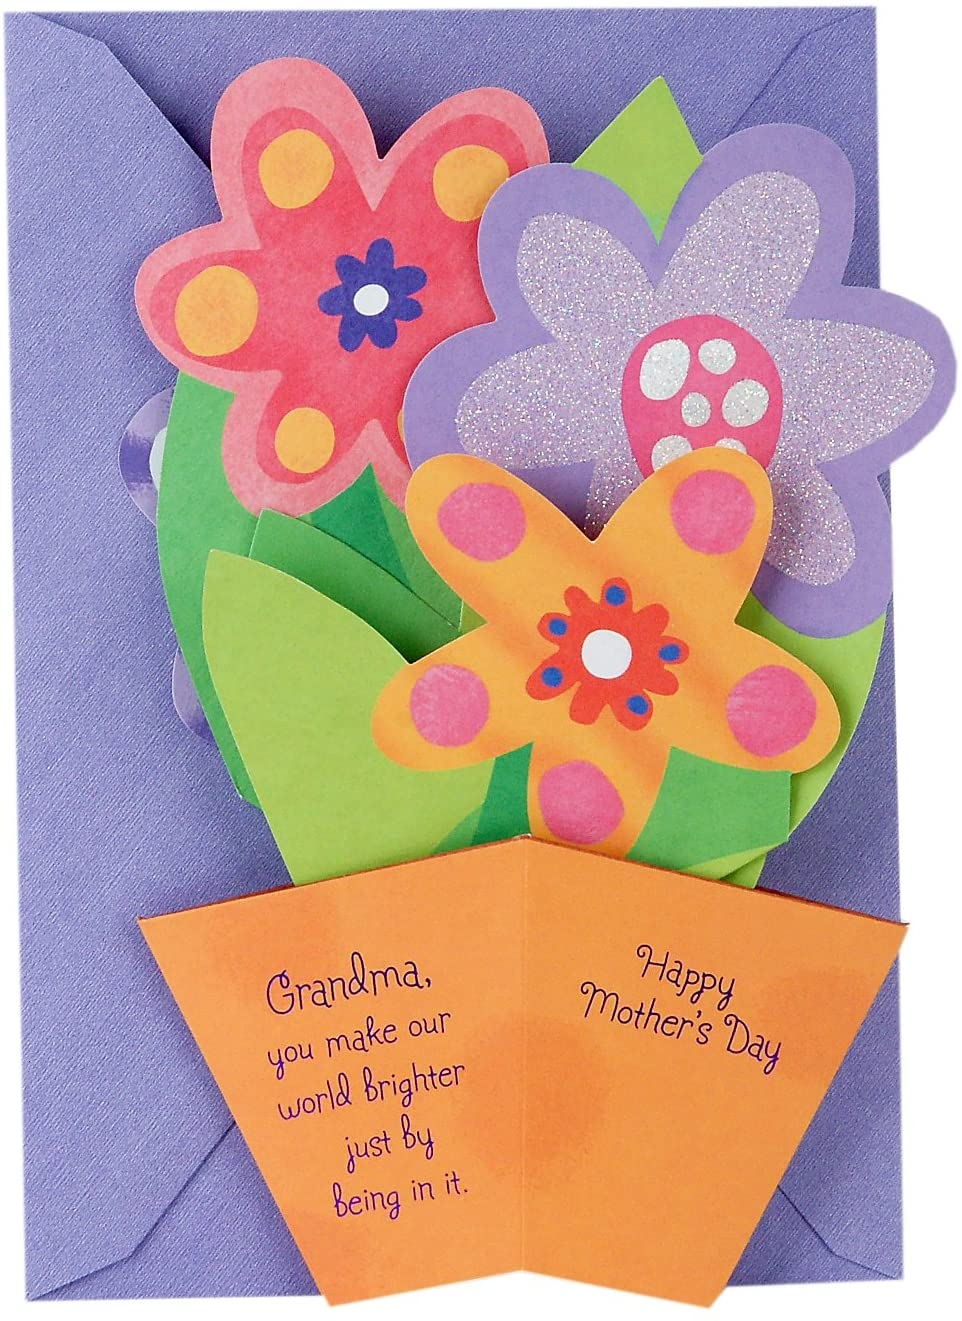 mothers day 2020 wishes greeting cards ideas in pictures